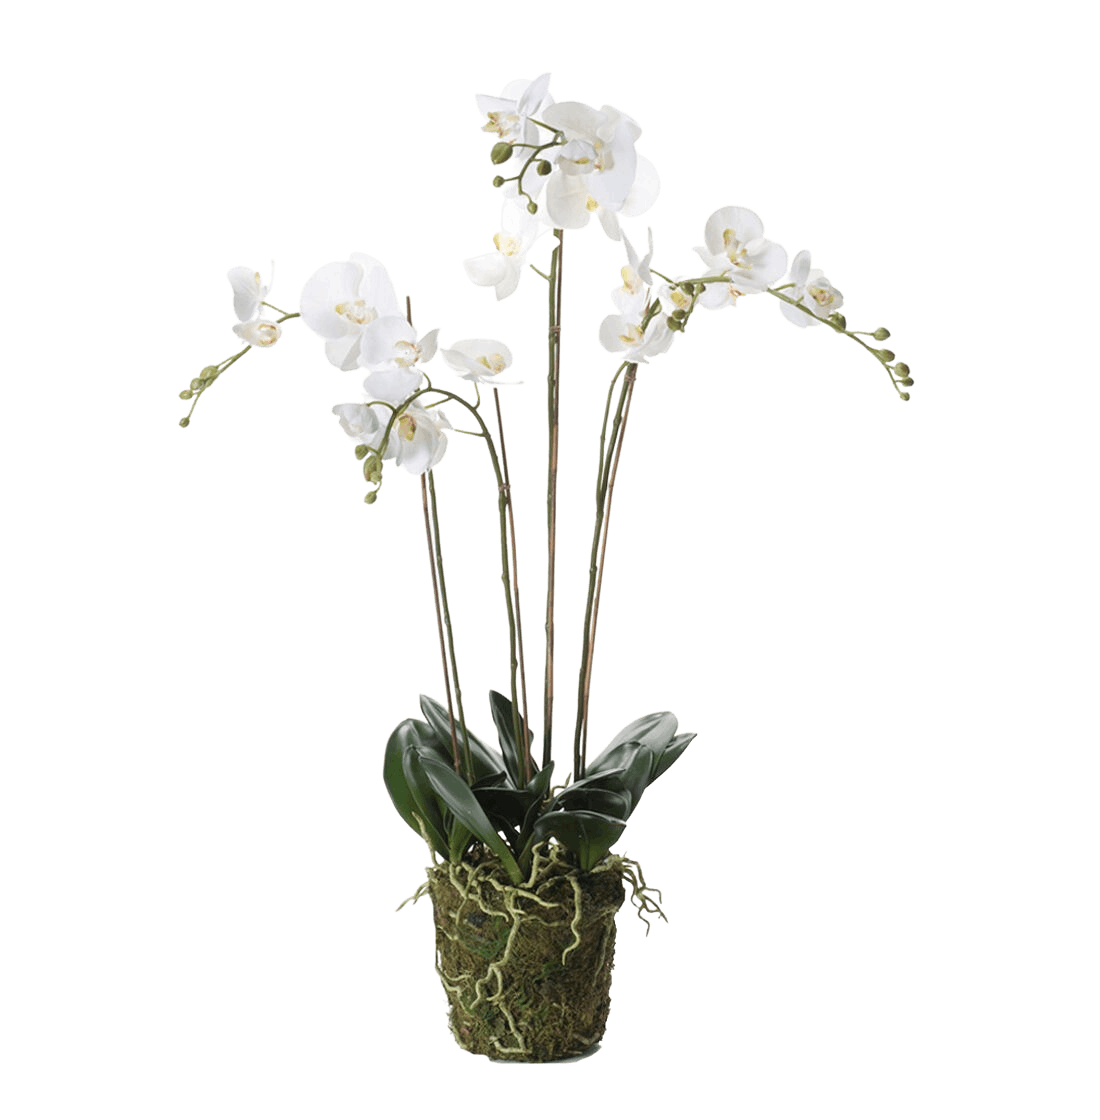 Artificial white moon phalaenopsis orchid 90cm